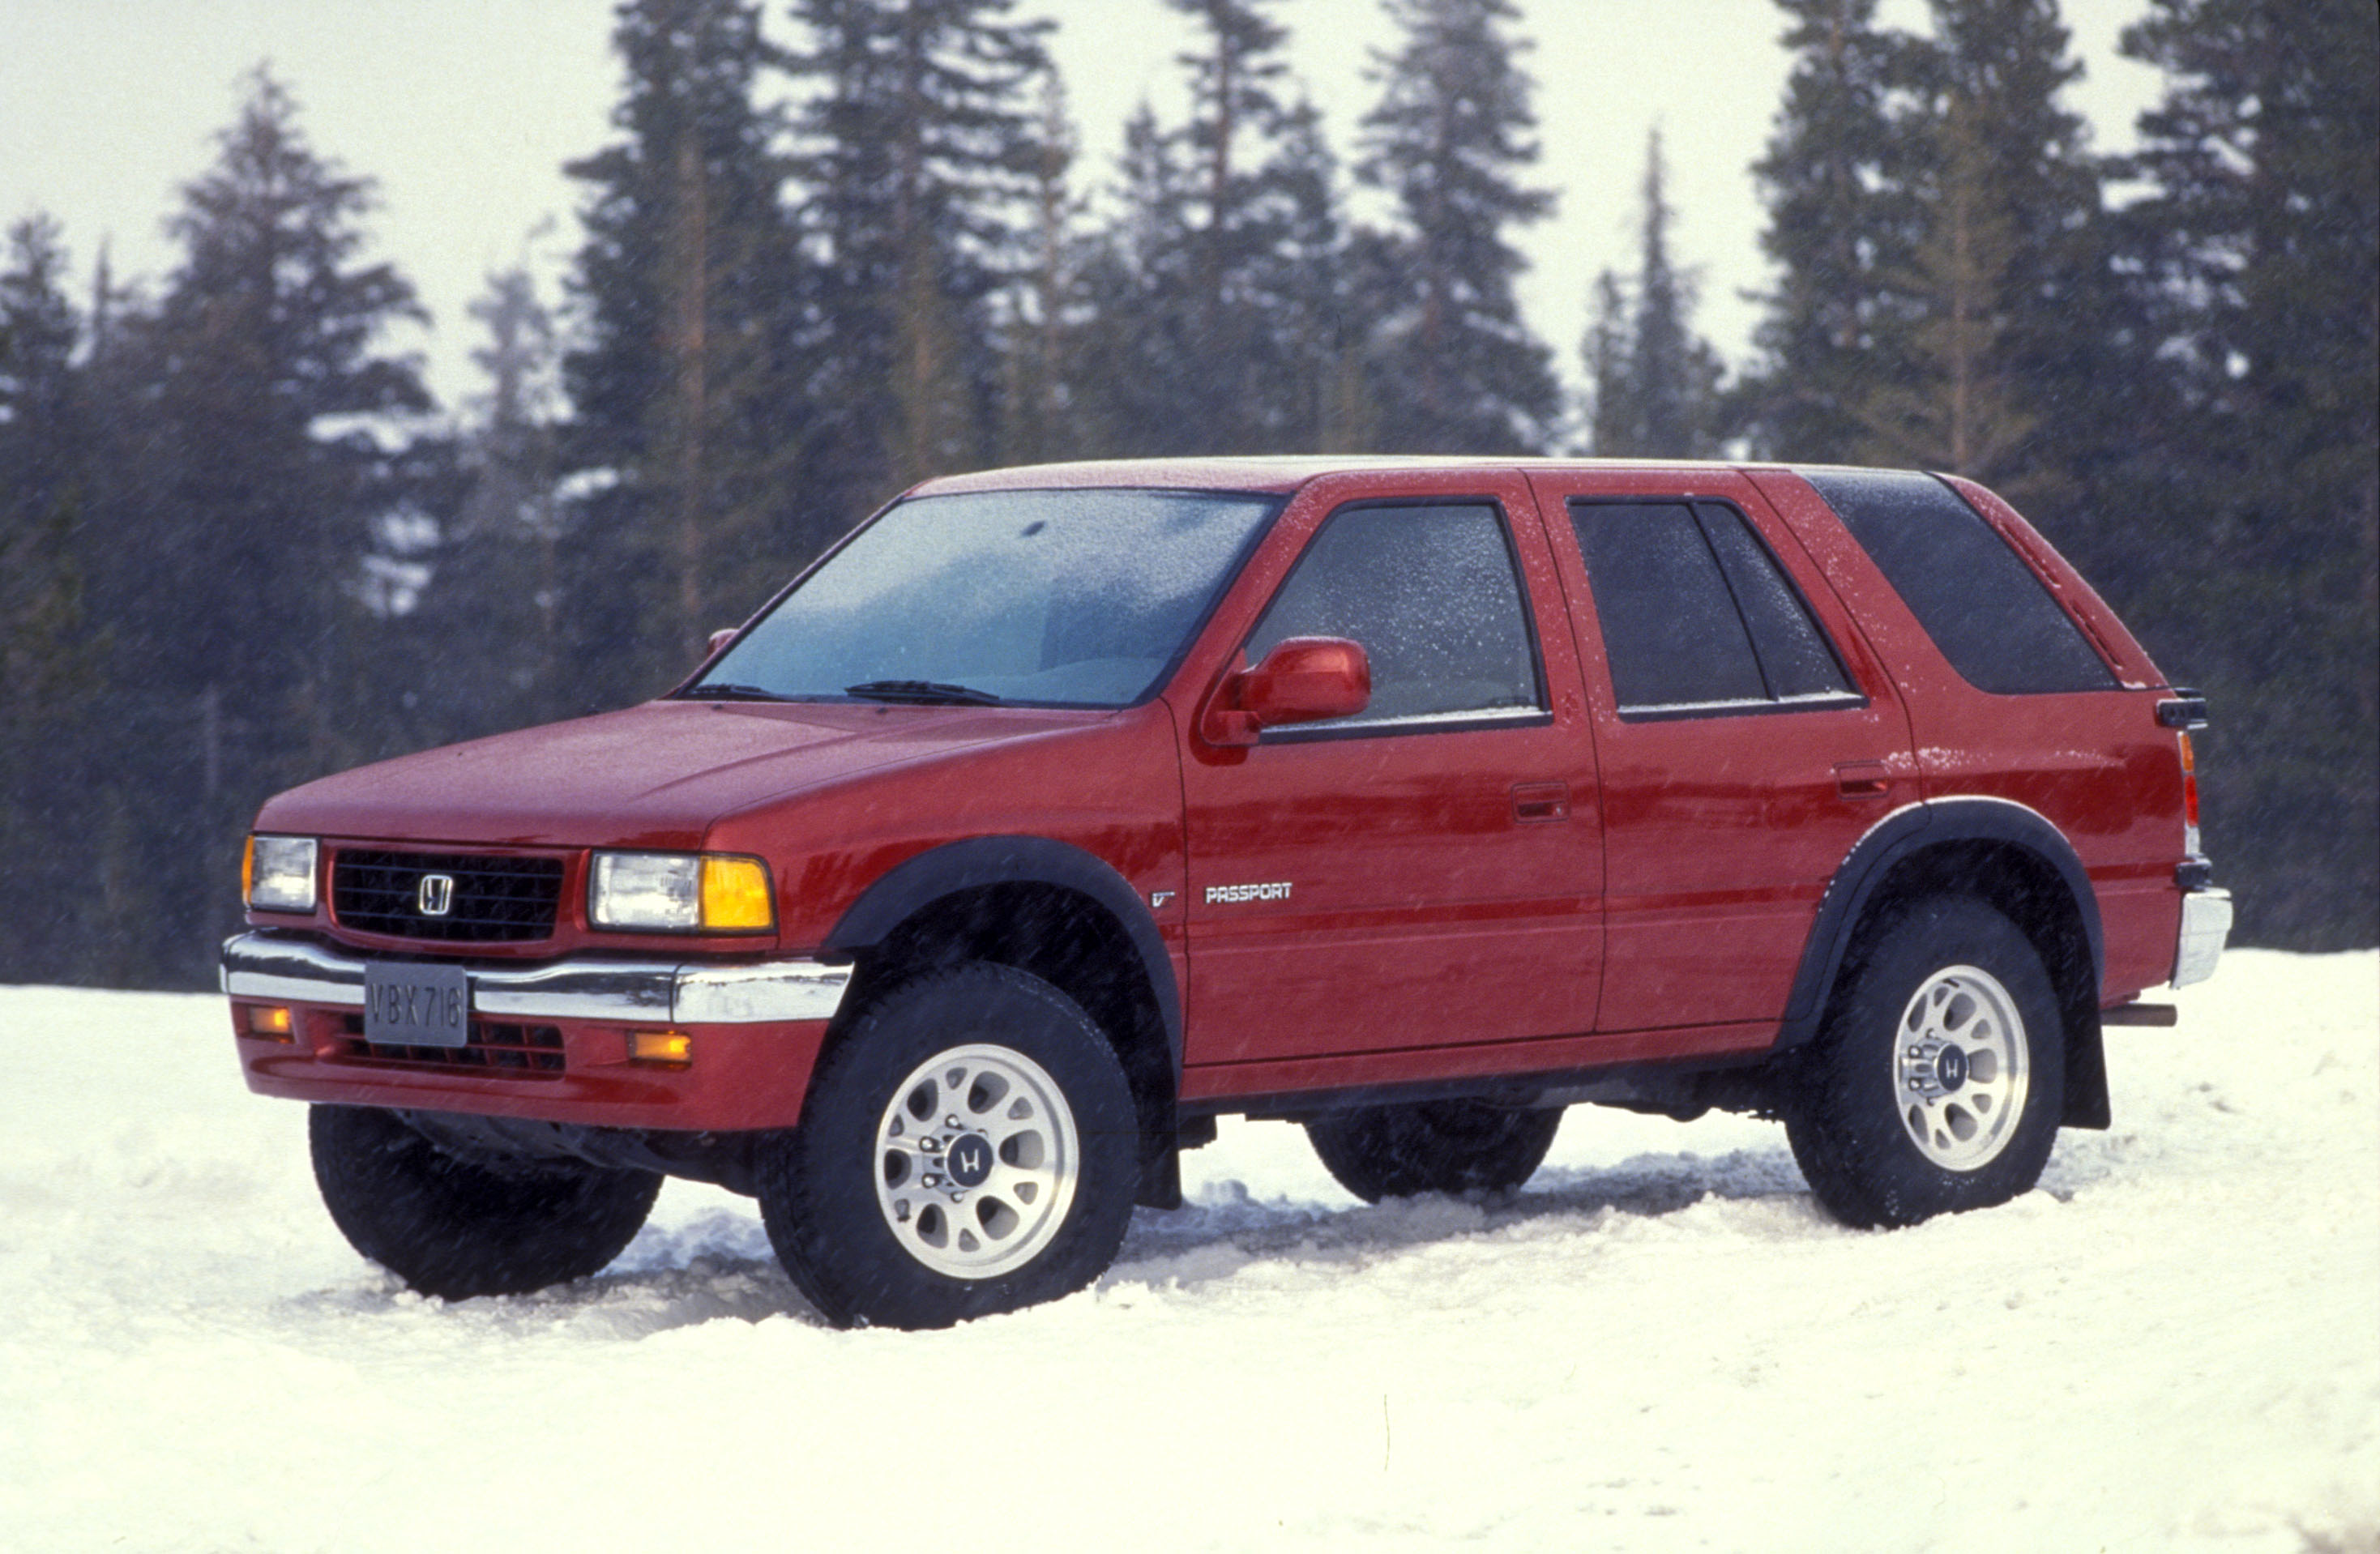 Honda Passport I 1993 - 1997 SUV 5 door #1